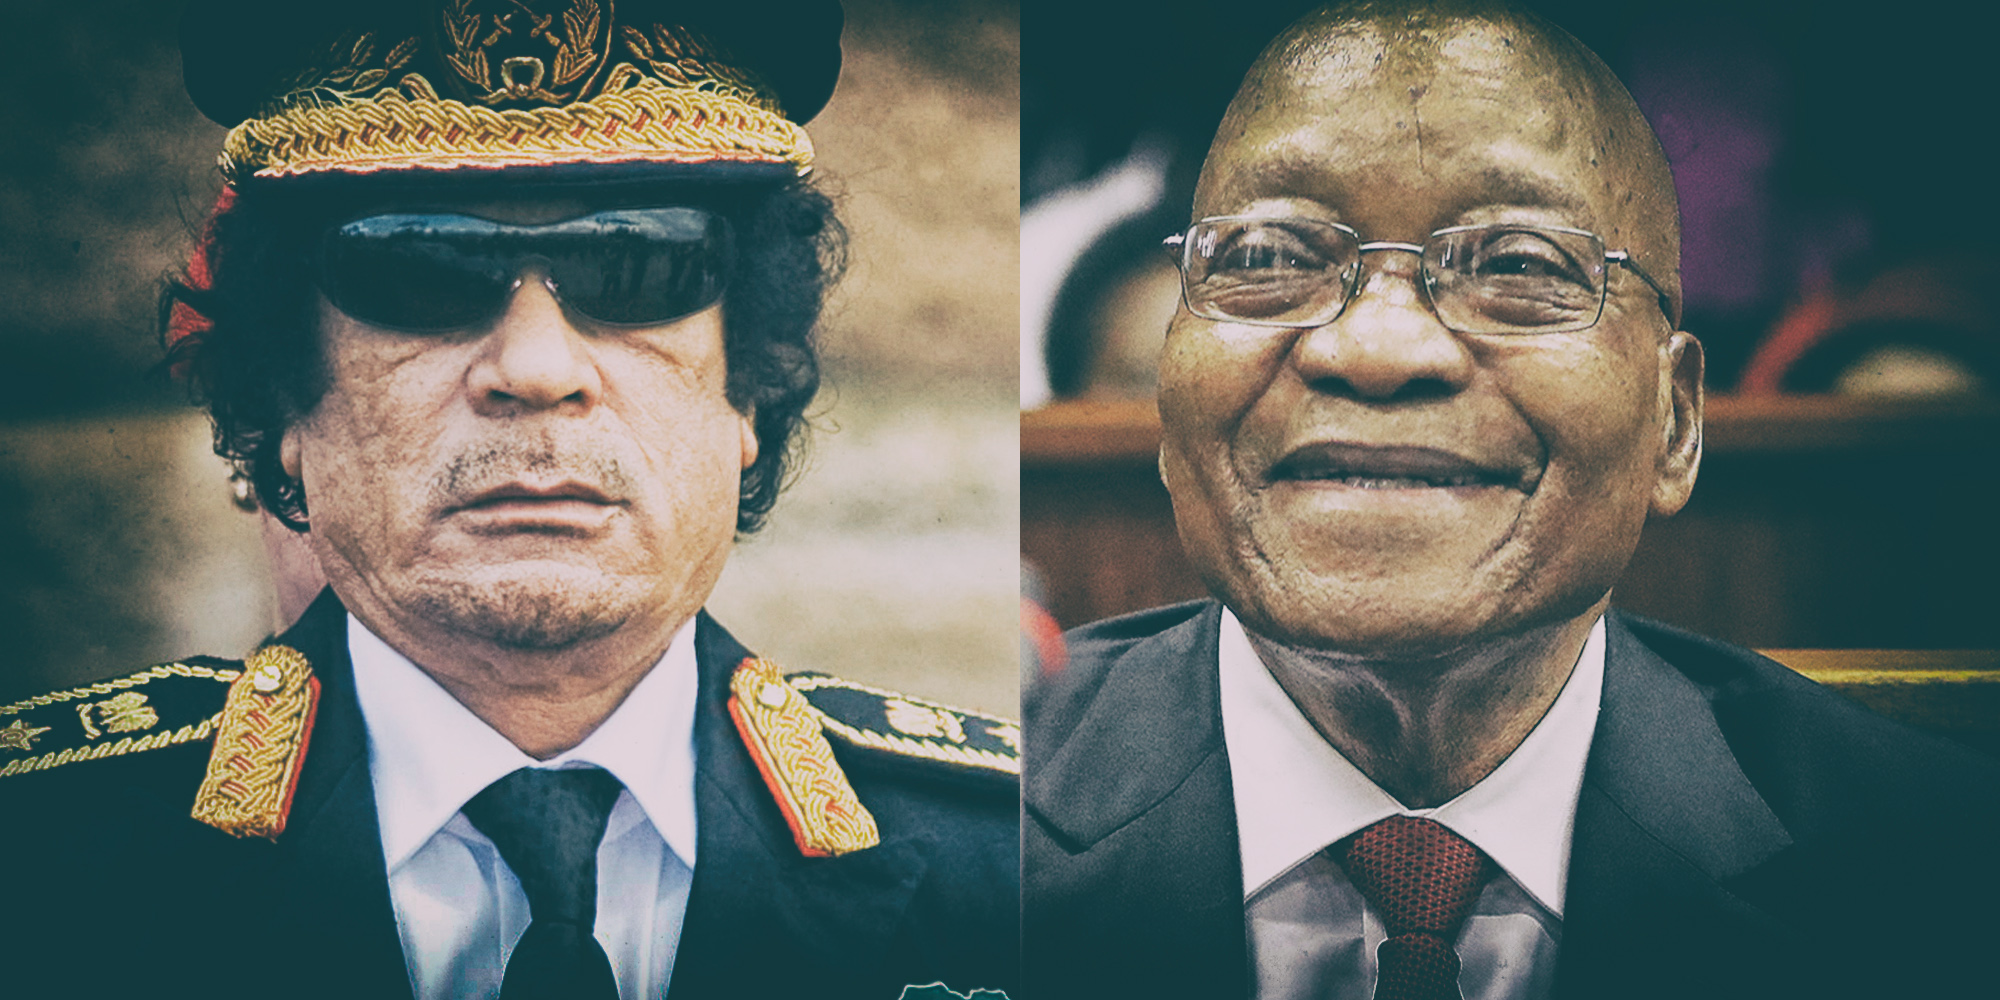 Gaddafi's money and the prospects of accountability: Zuma exposes not just himself, but South Africa too